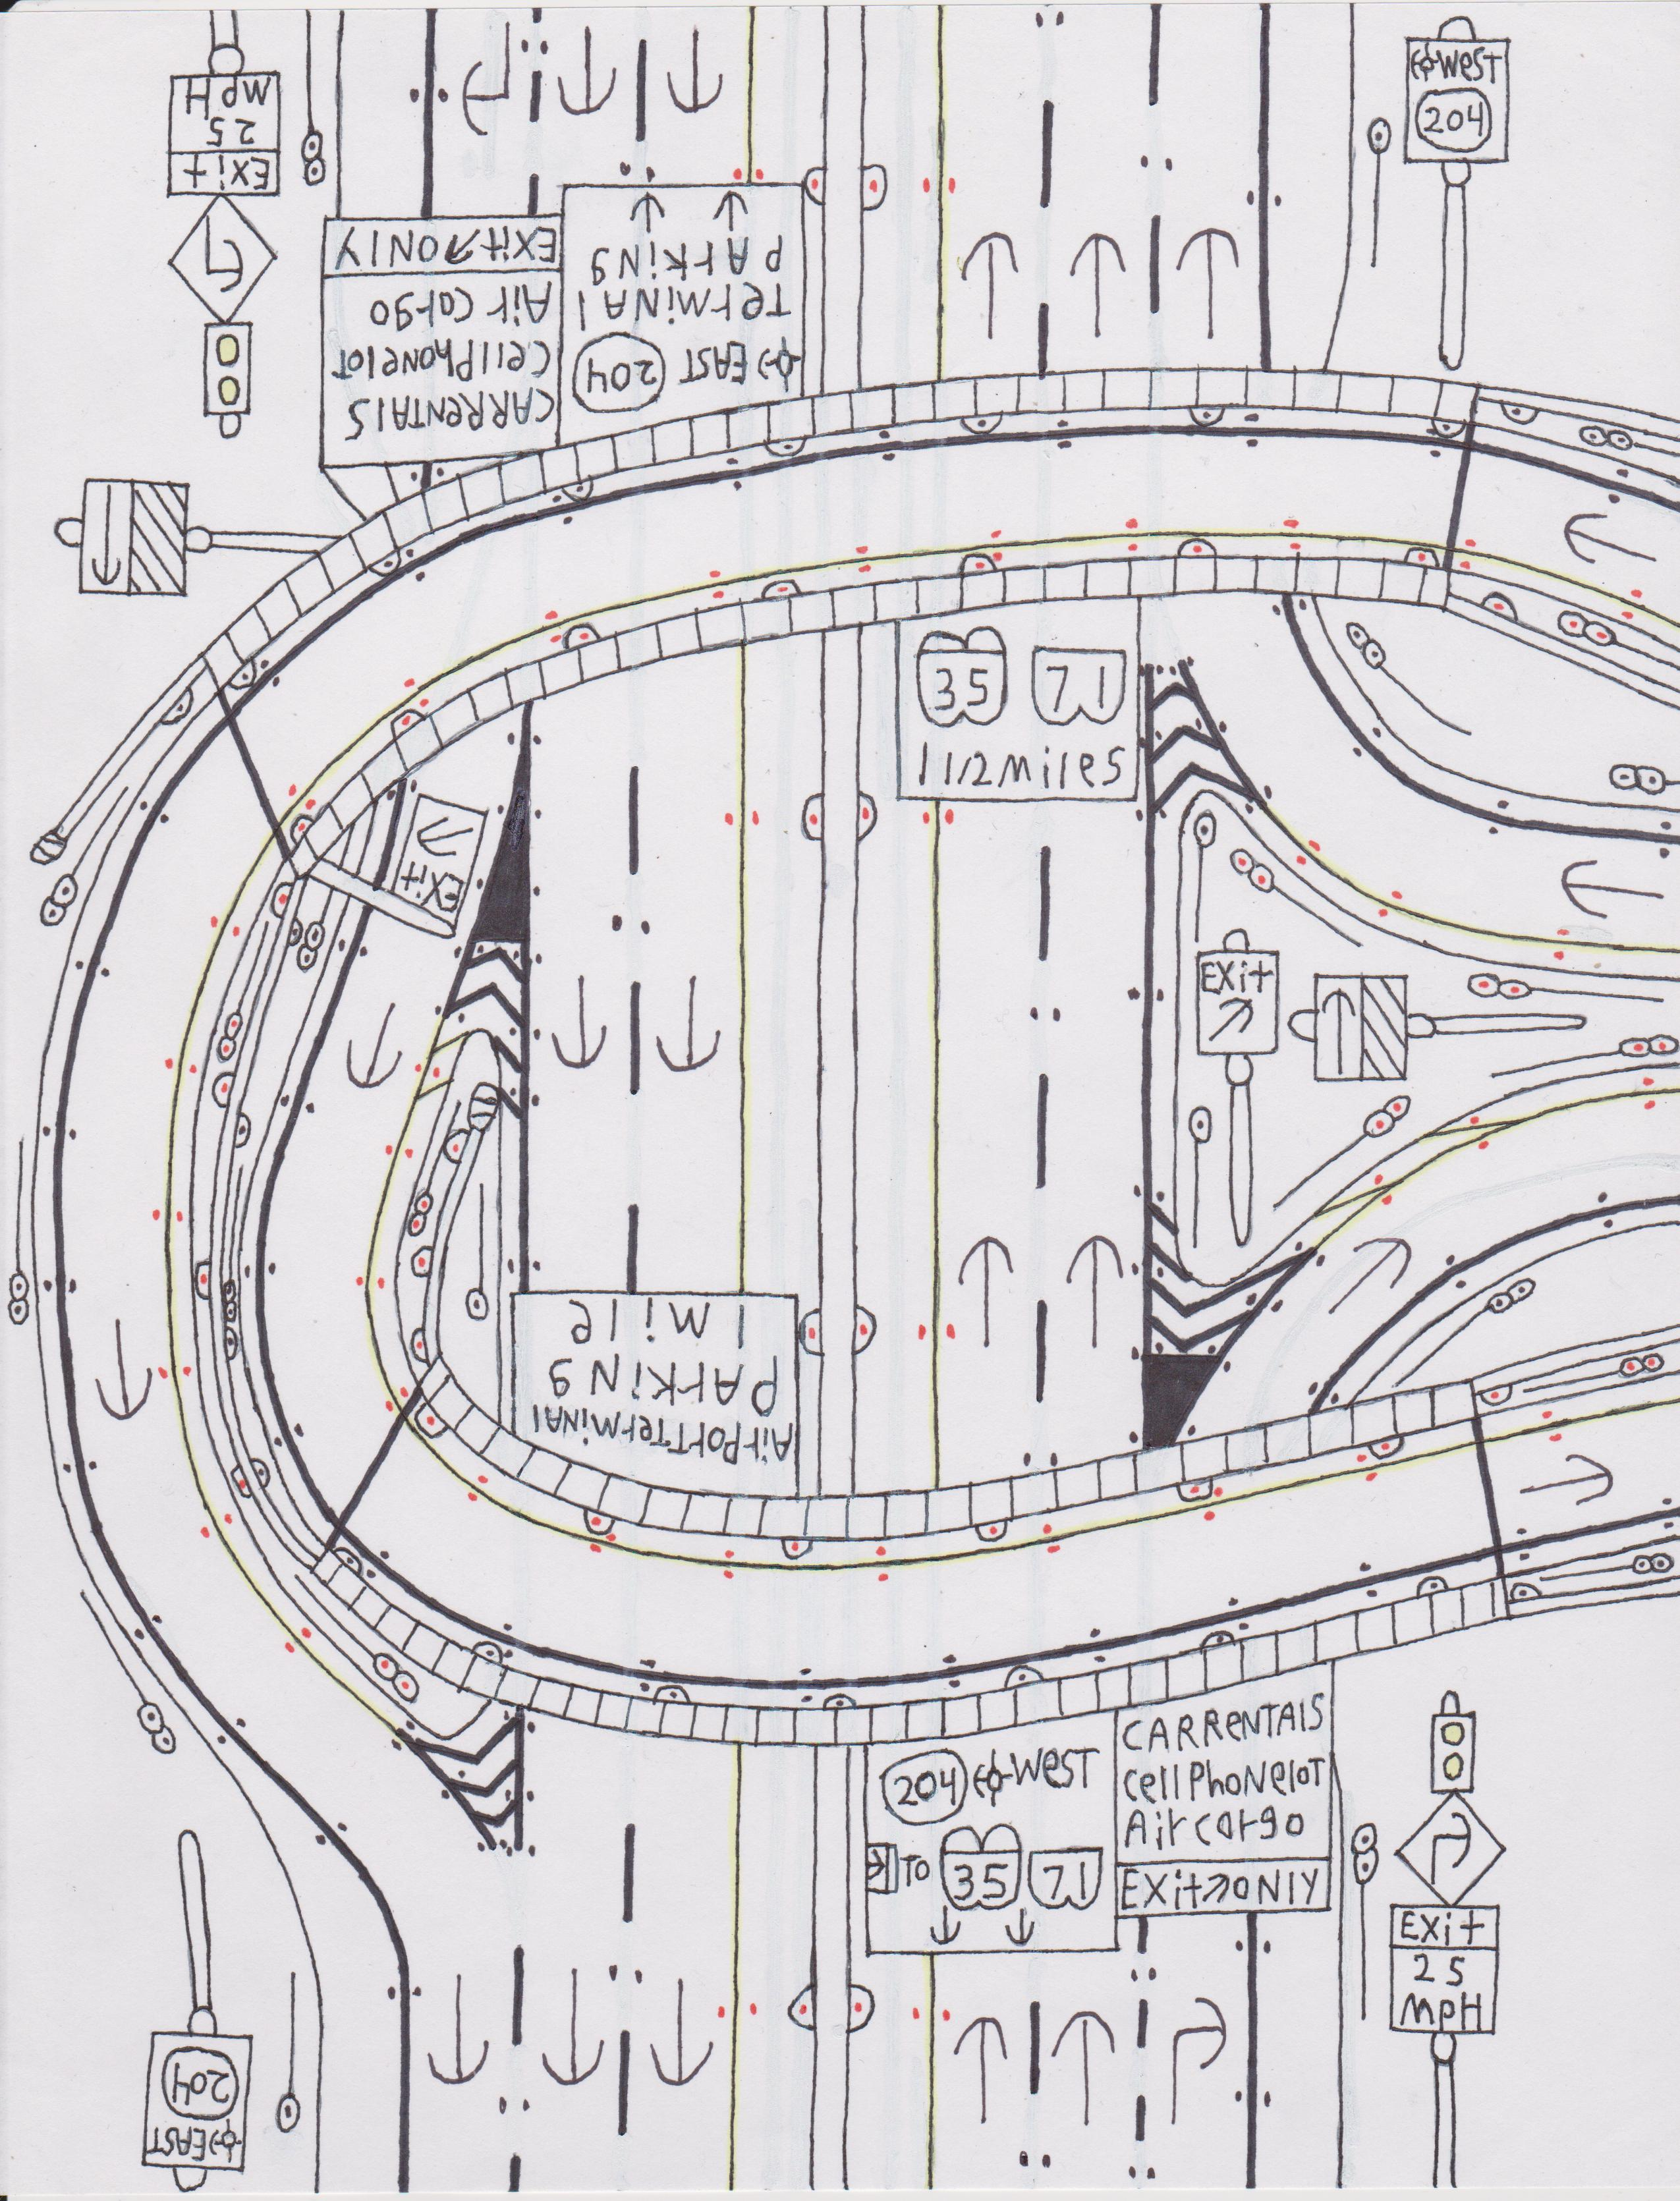 Roadscapes Wednesday: Two New Road Drawings And A Traffic Light ...